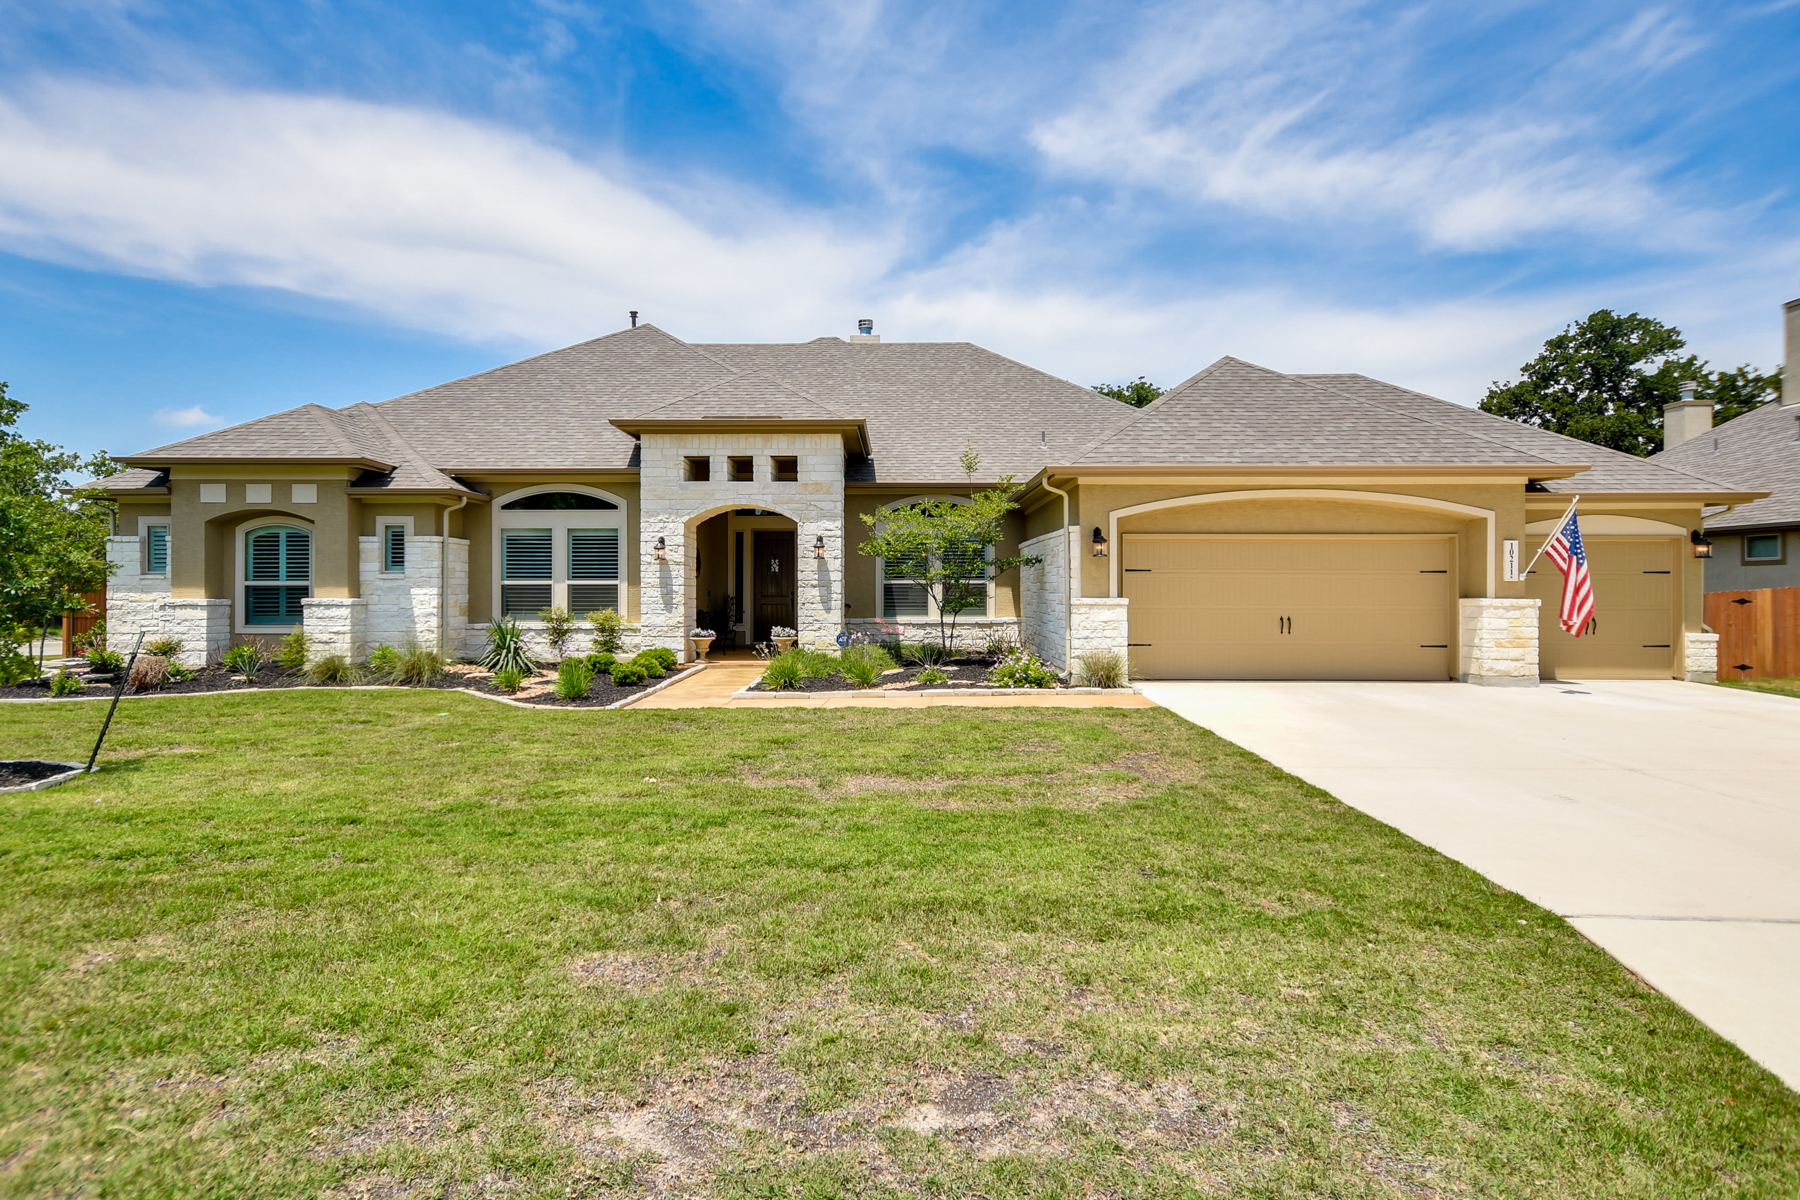 Single Family Home for Sale at Beautifully Upgraded Home in Balcones Creek 10211 Clearance Boerne, Texas 78006 United States